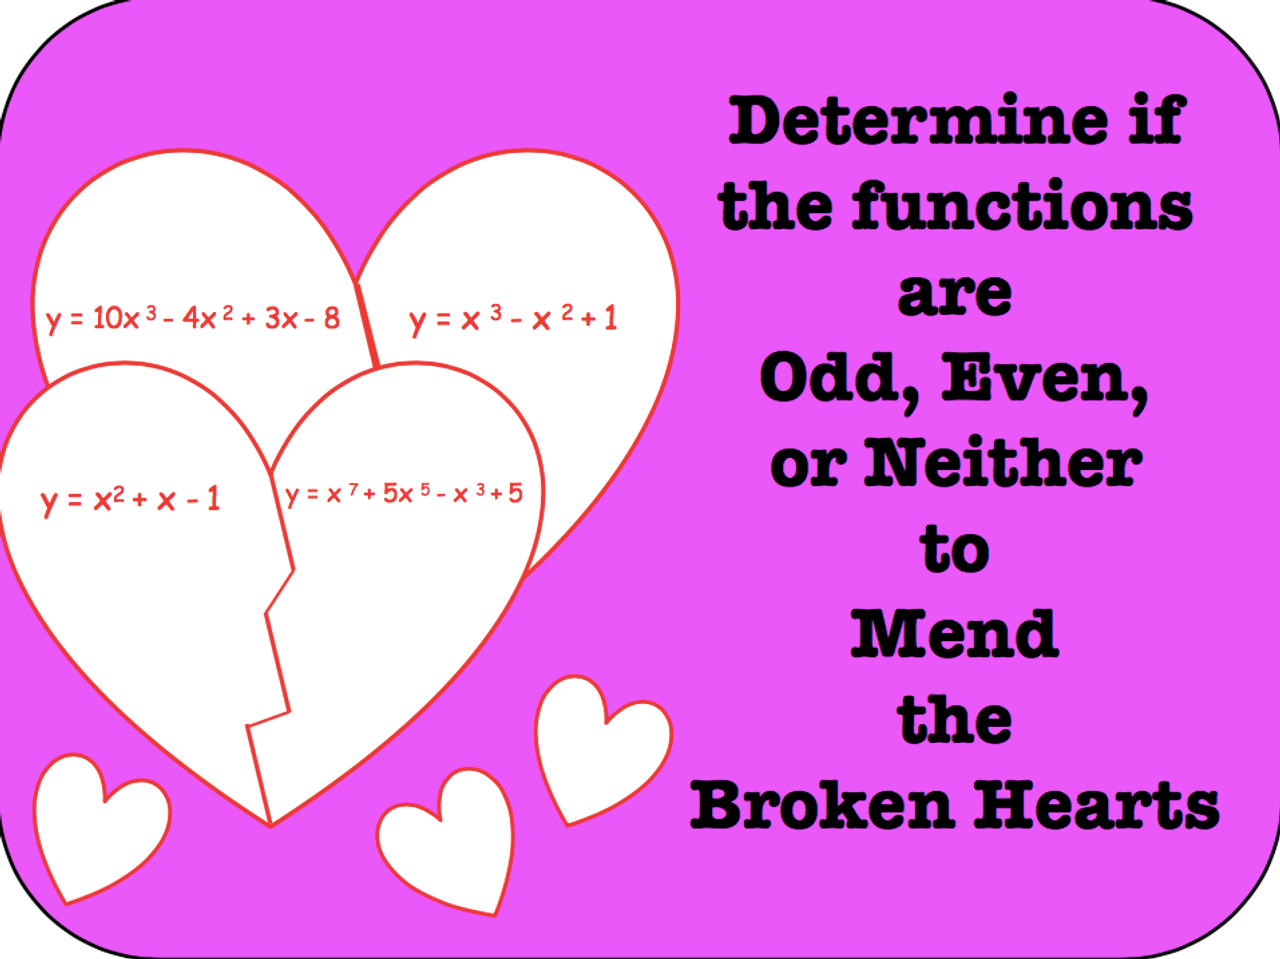 Determine if the functions are Odd, Even, or Neither to Mend Broken Hearts